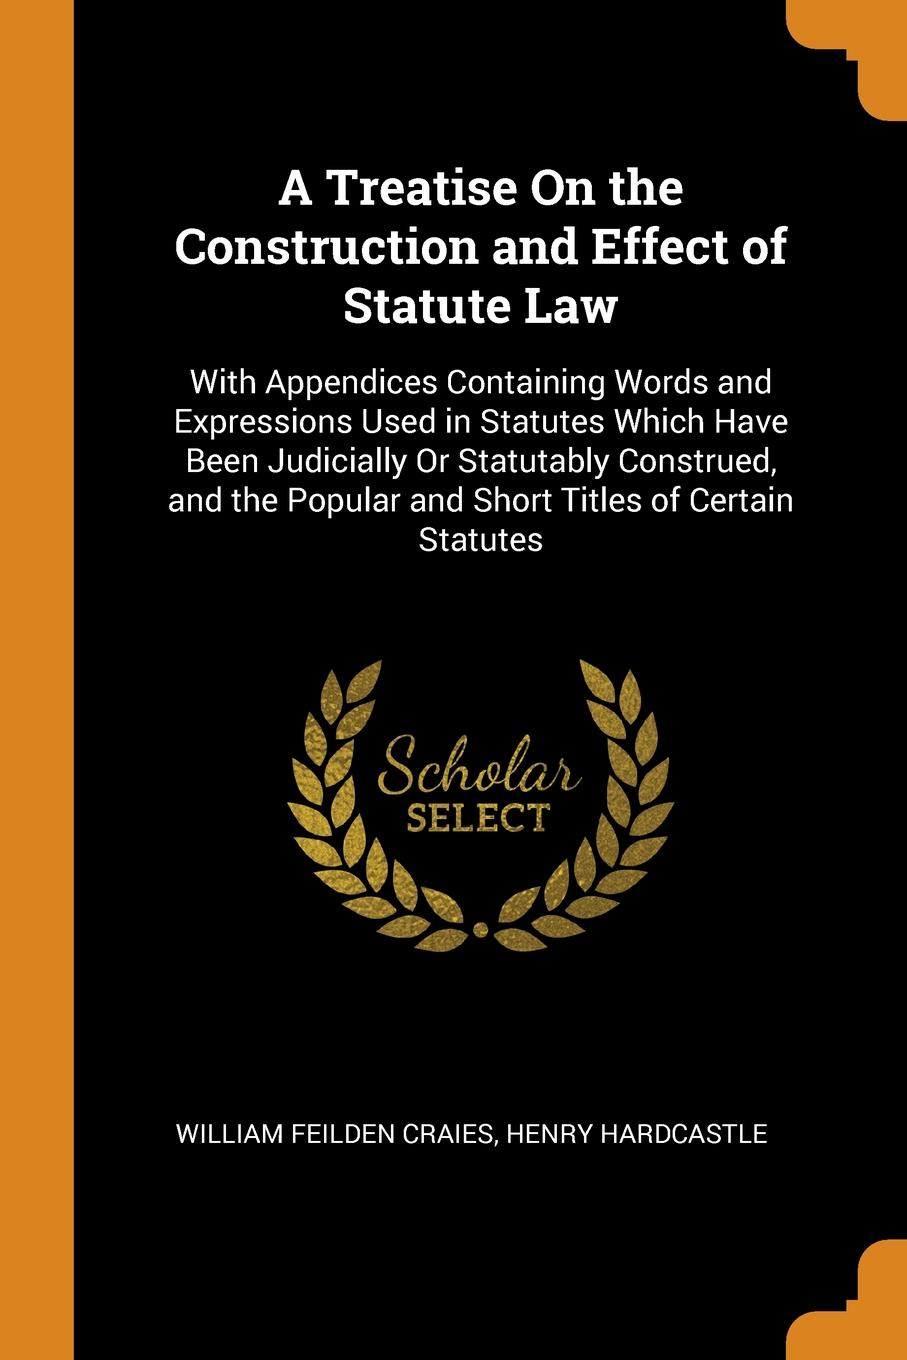 A Treatise On the Construction and Effect of Statute Law. With Appendices Containing Words and Expressions Used in Statutes Which Have Been Judicially Or Statutably Construed, and the Popular and Short Titles of Certain Statutes. William Feilden Craies, Henry Hardcastle